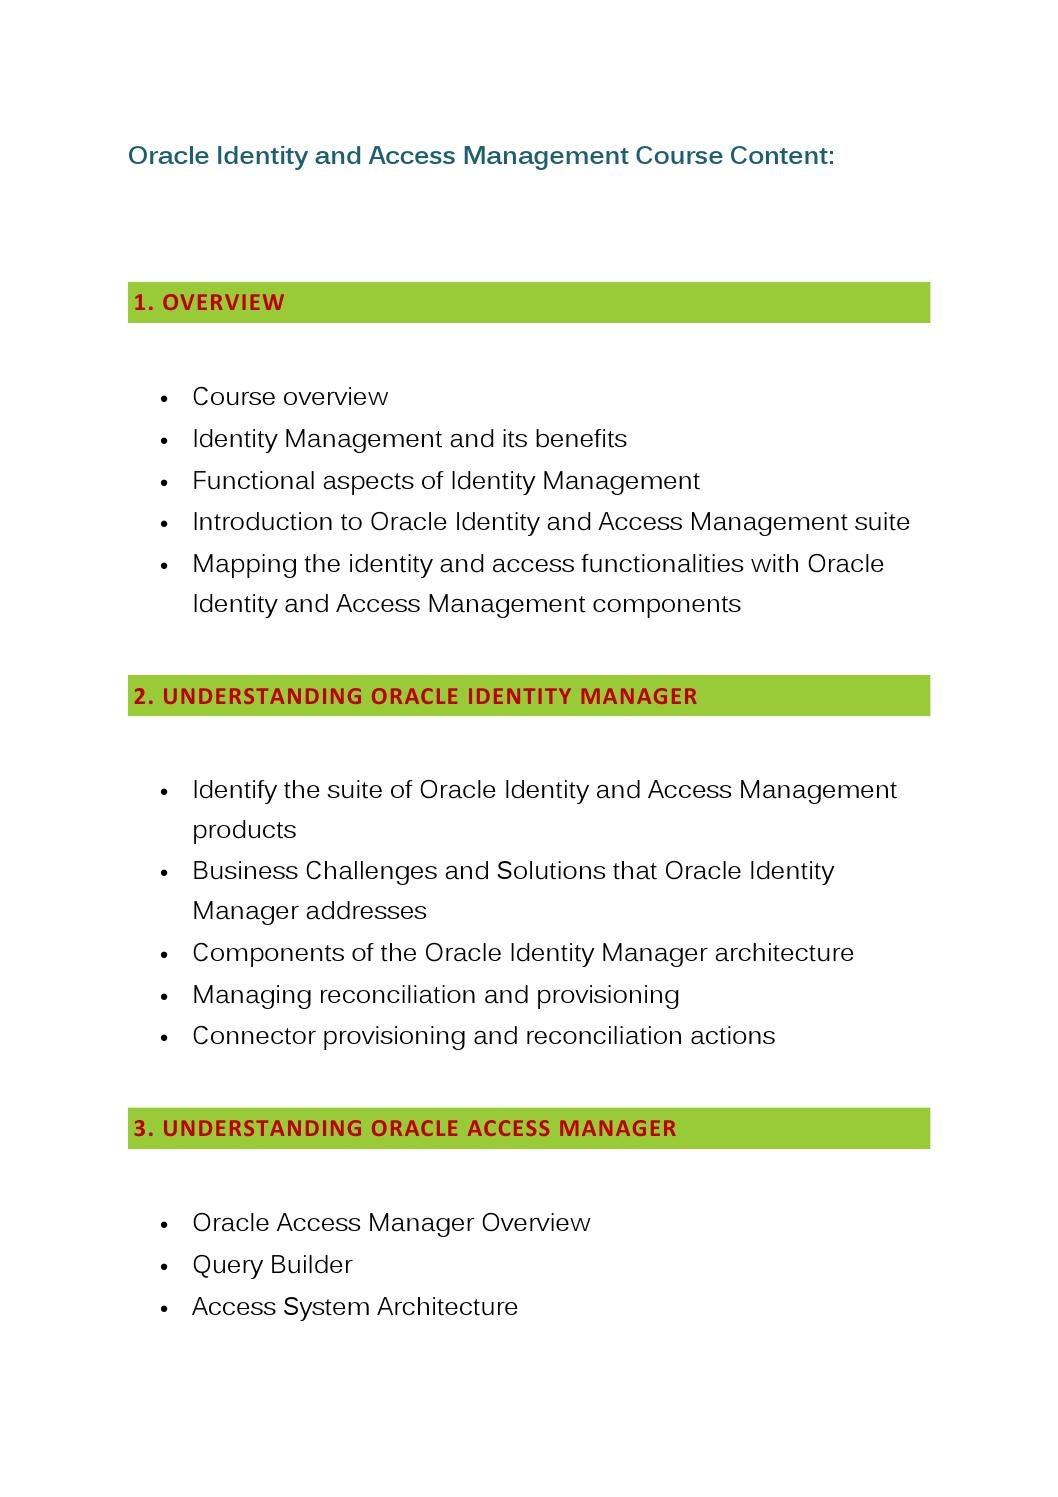 Oracle Identity & Access Management Training Online by Glory IT